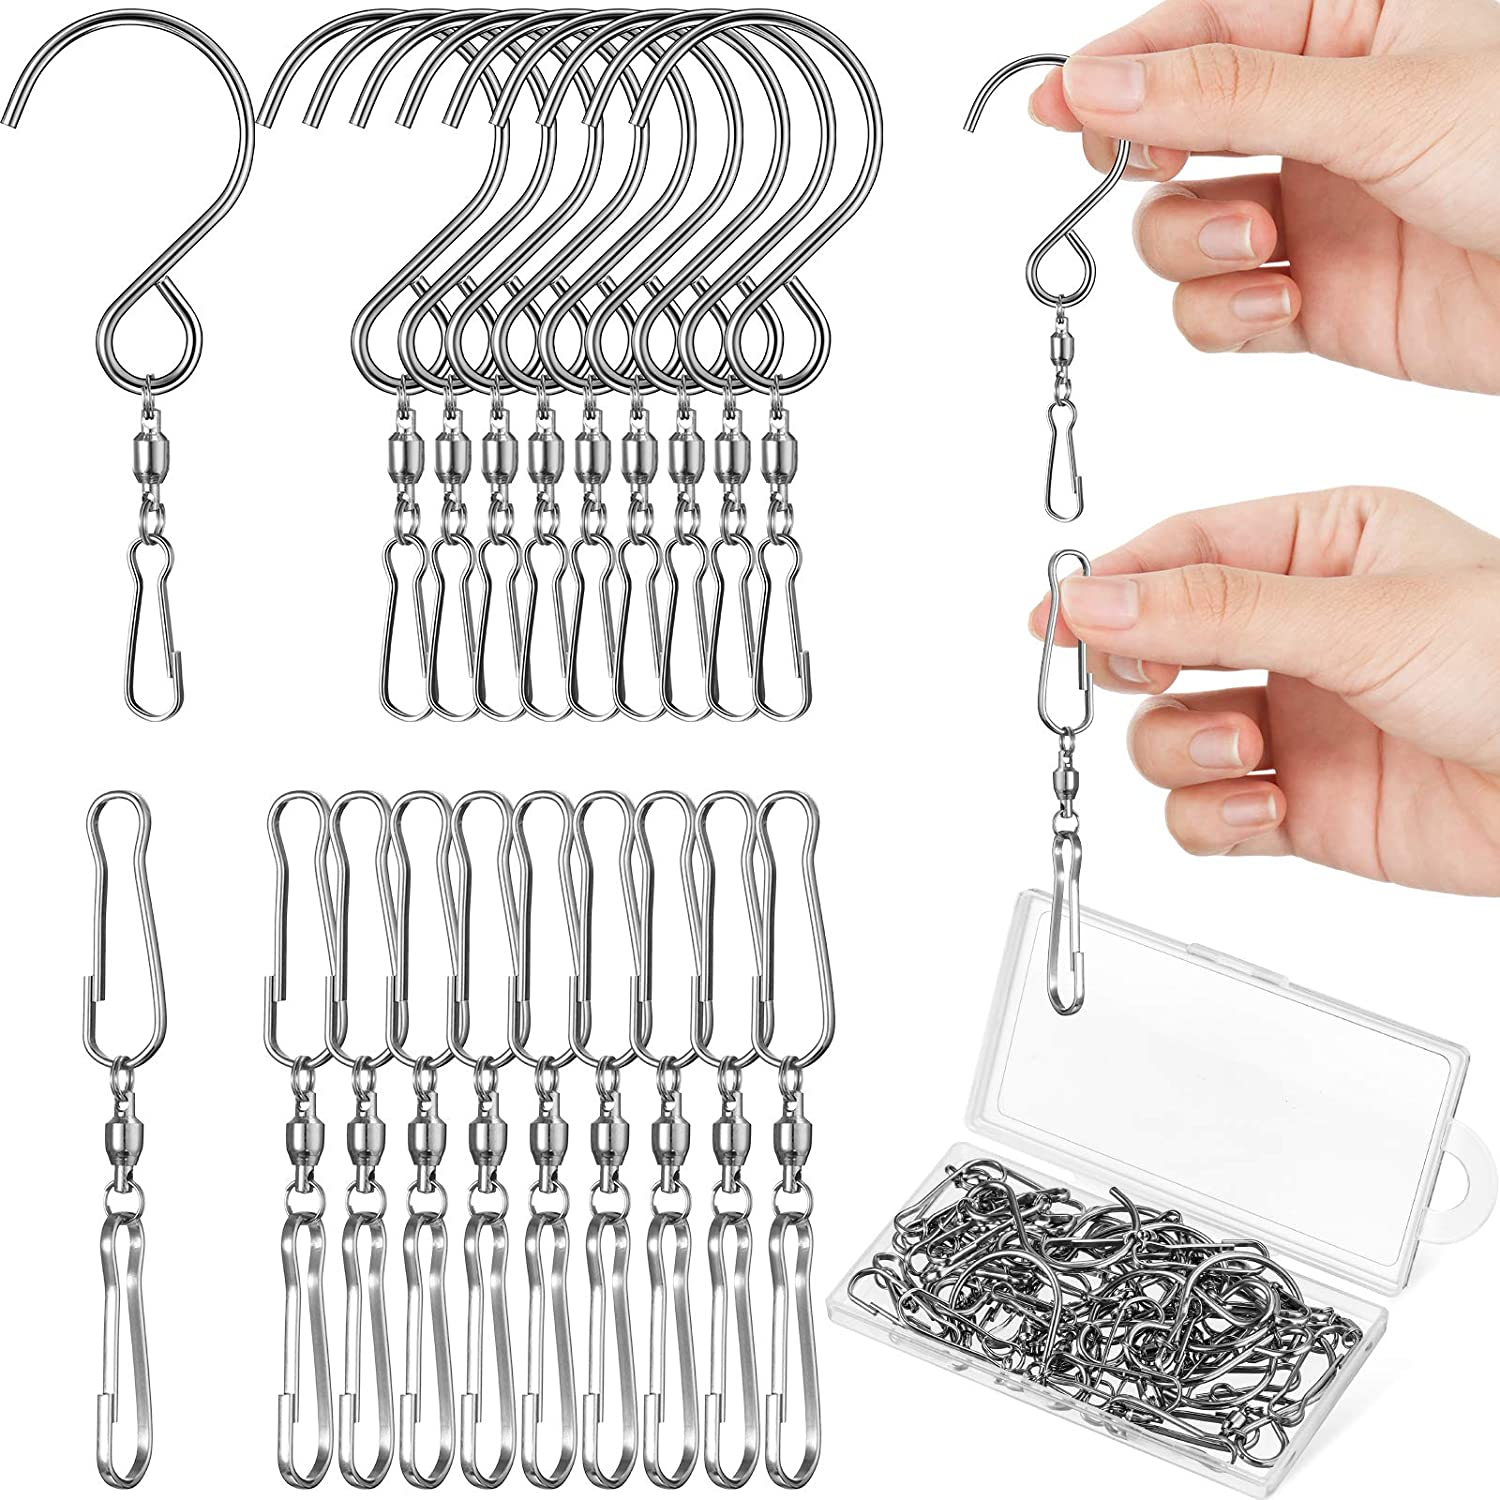 30 Pieces Dual Swivel Hook 360 Degree Rotating Windsock Clips Stainless Steel Hanger Swivels Clip Dual Hanging Spiral Hooks with Storage Box for Hanging Wind Spinners Wind Chimes Supply, 2 Styles